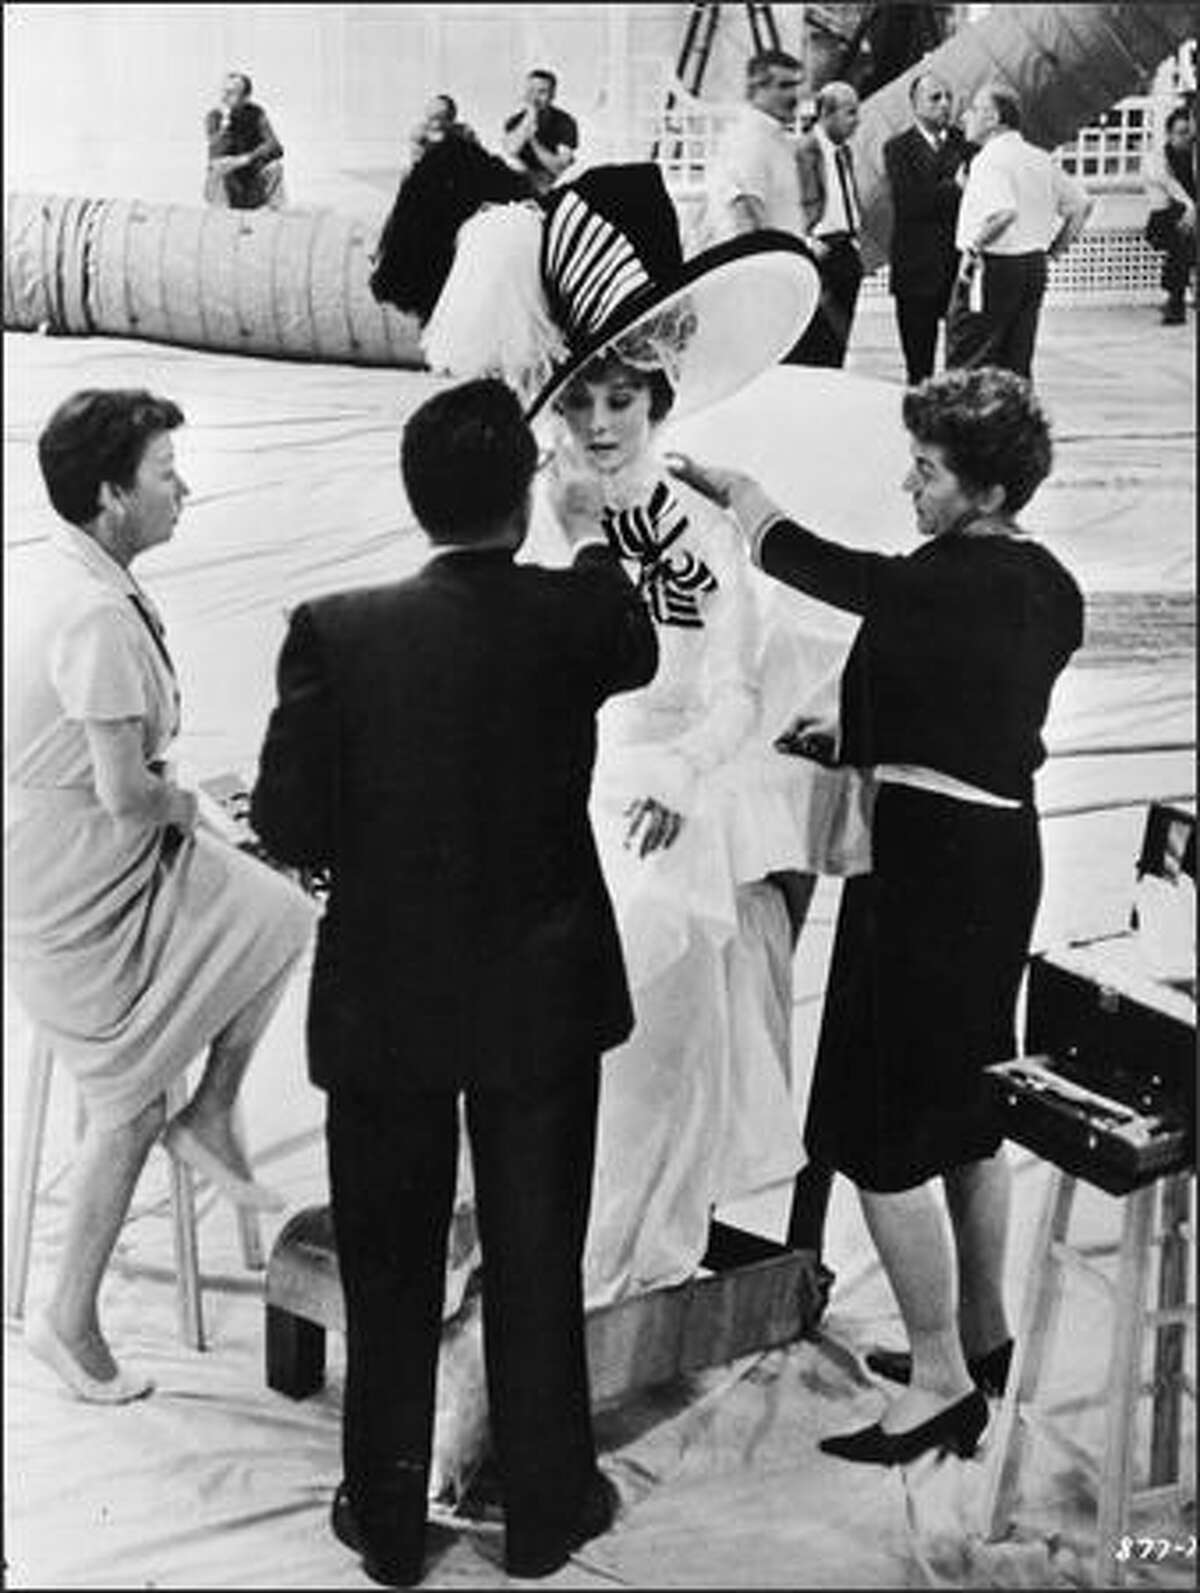 Belgian-born actor Audrey Hepburn (1929-1993) wears an elaborate costume while having her makeup done on the set of 'My Fair Lady,' directed by George Cukor, 1964.